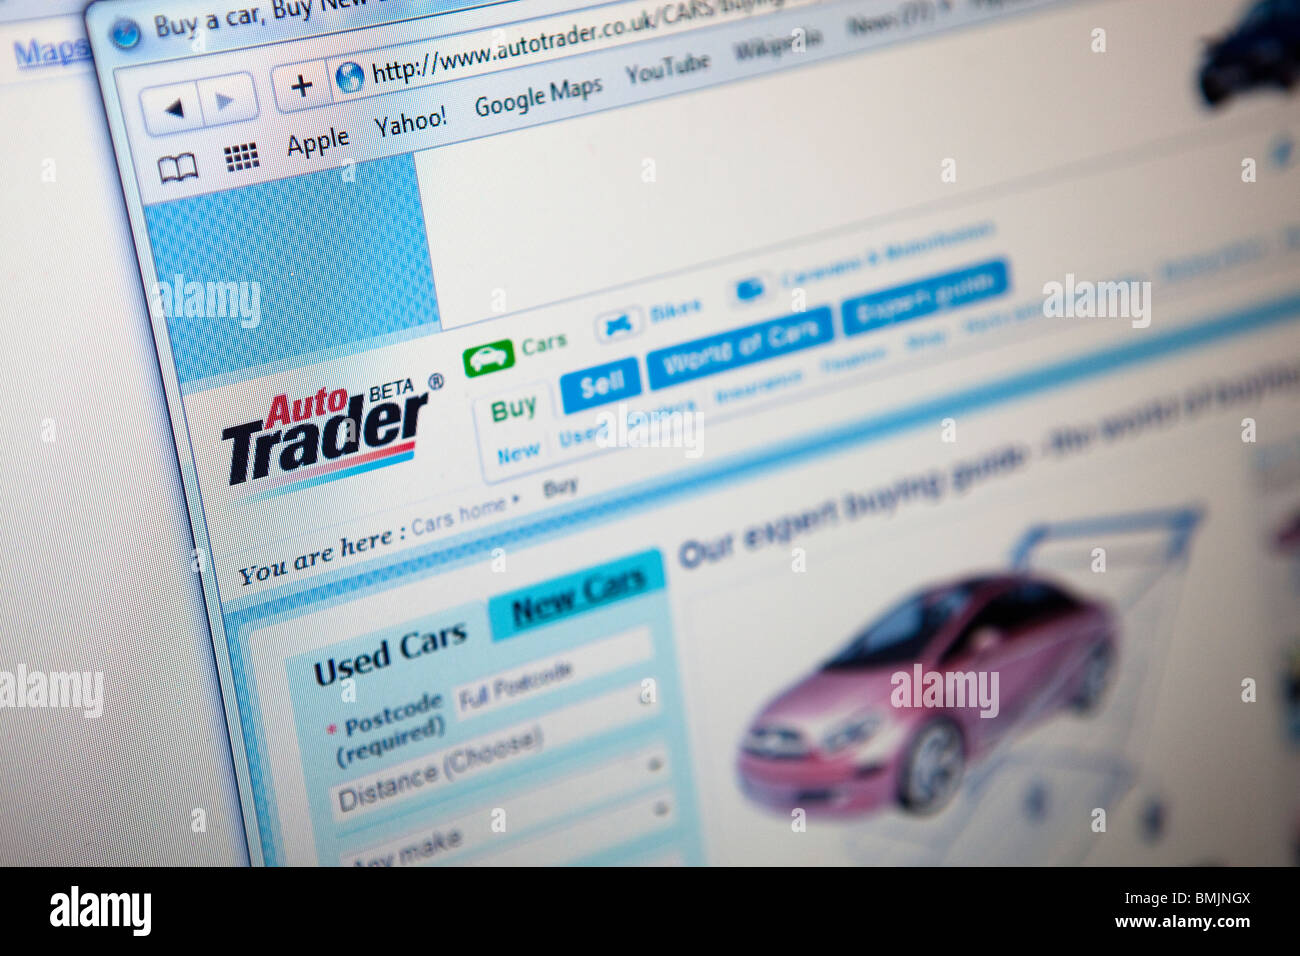 Car Trader Online Stock Photos & Car Trader Online Stock Images - Alamy